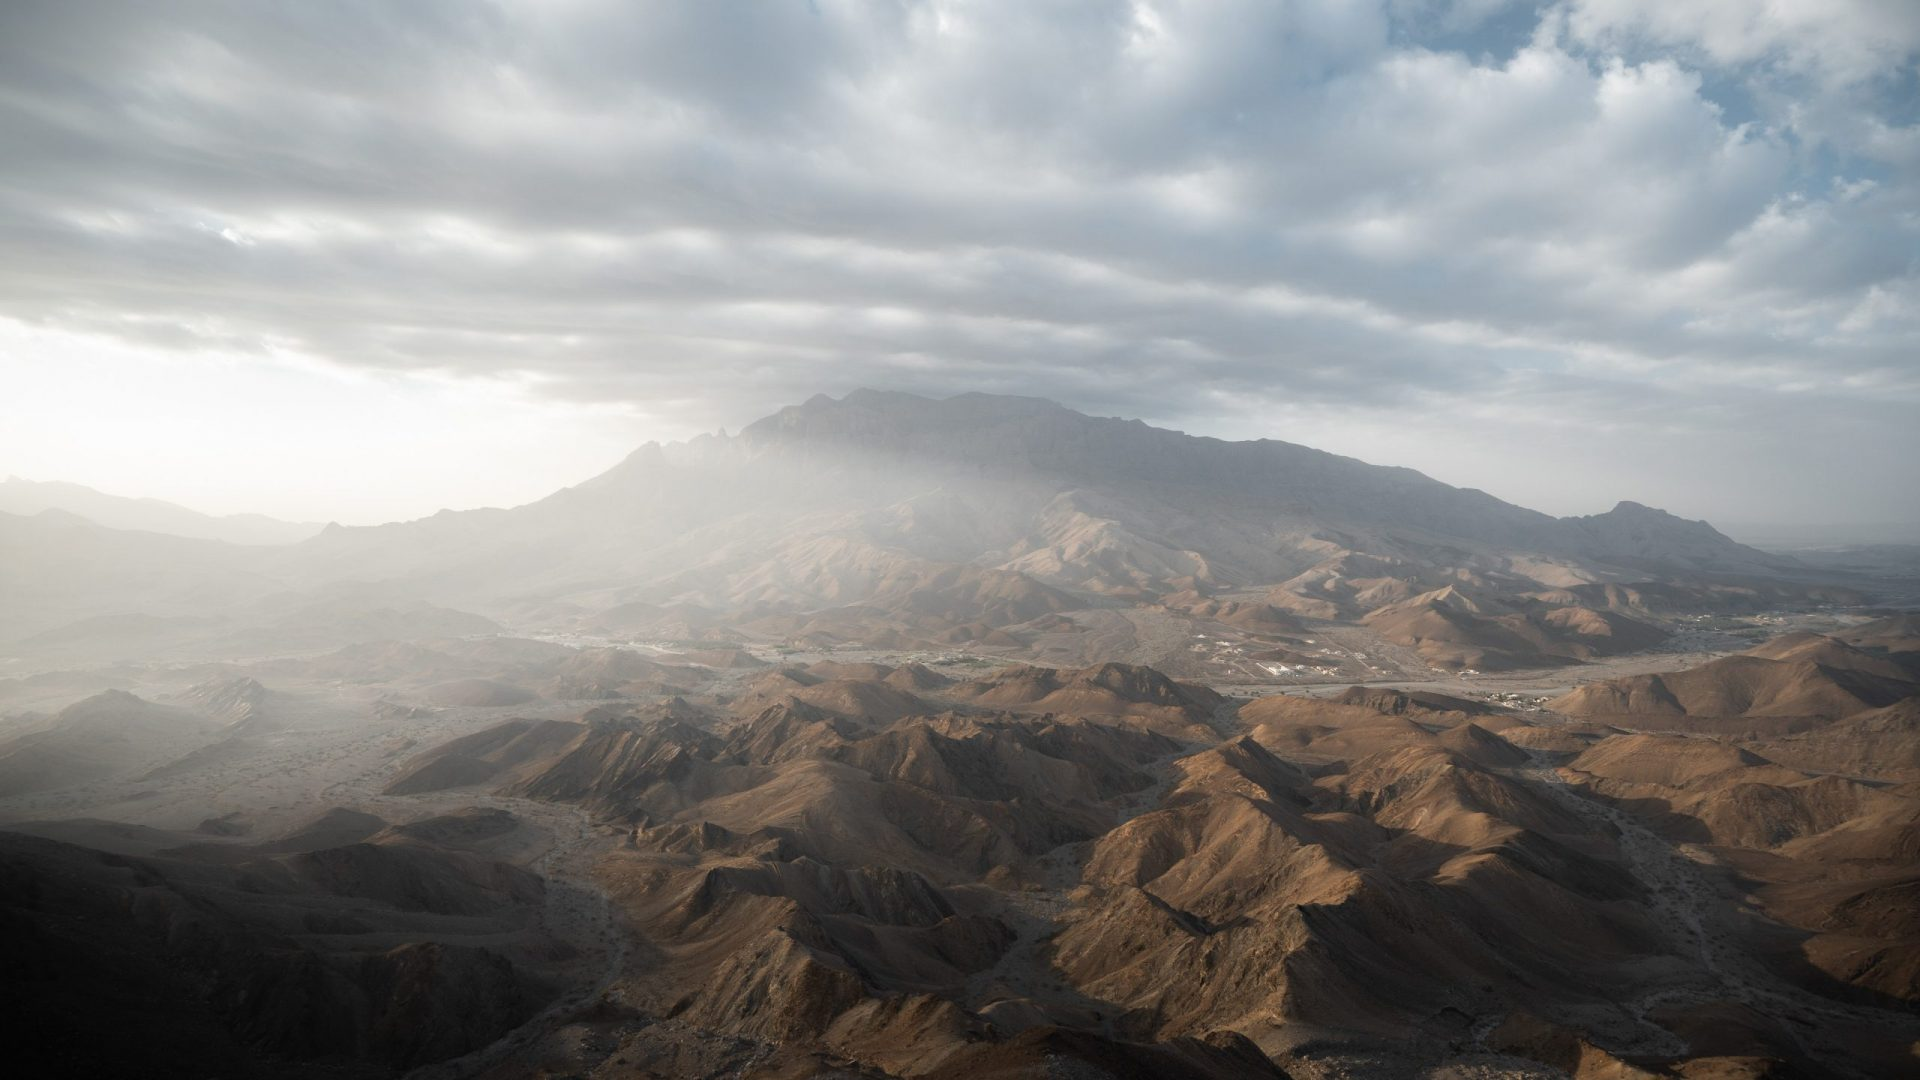 Oman is home to breathtaking cities